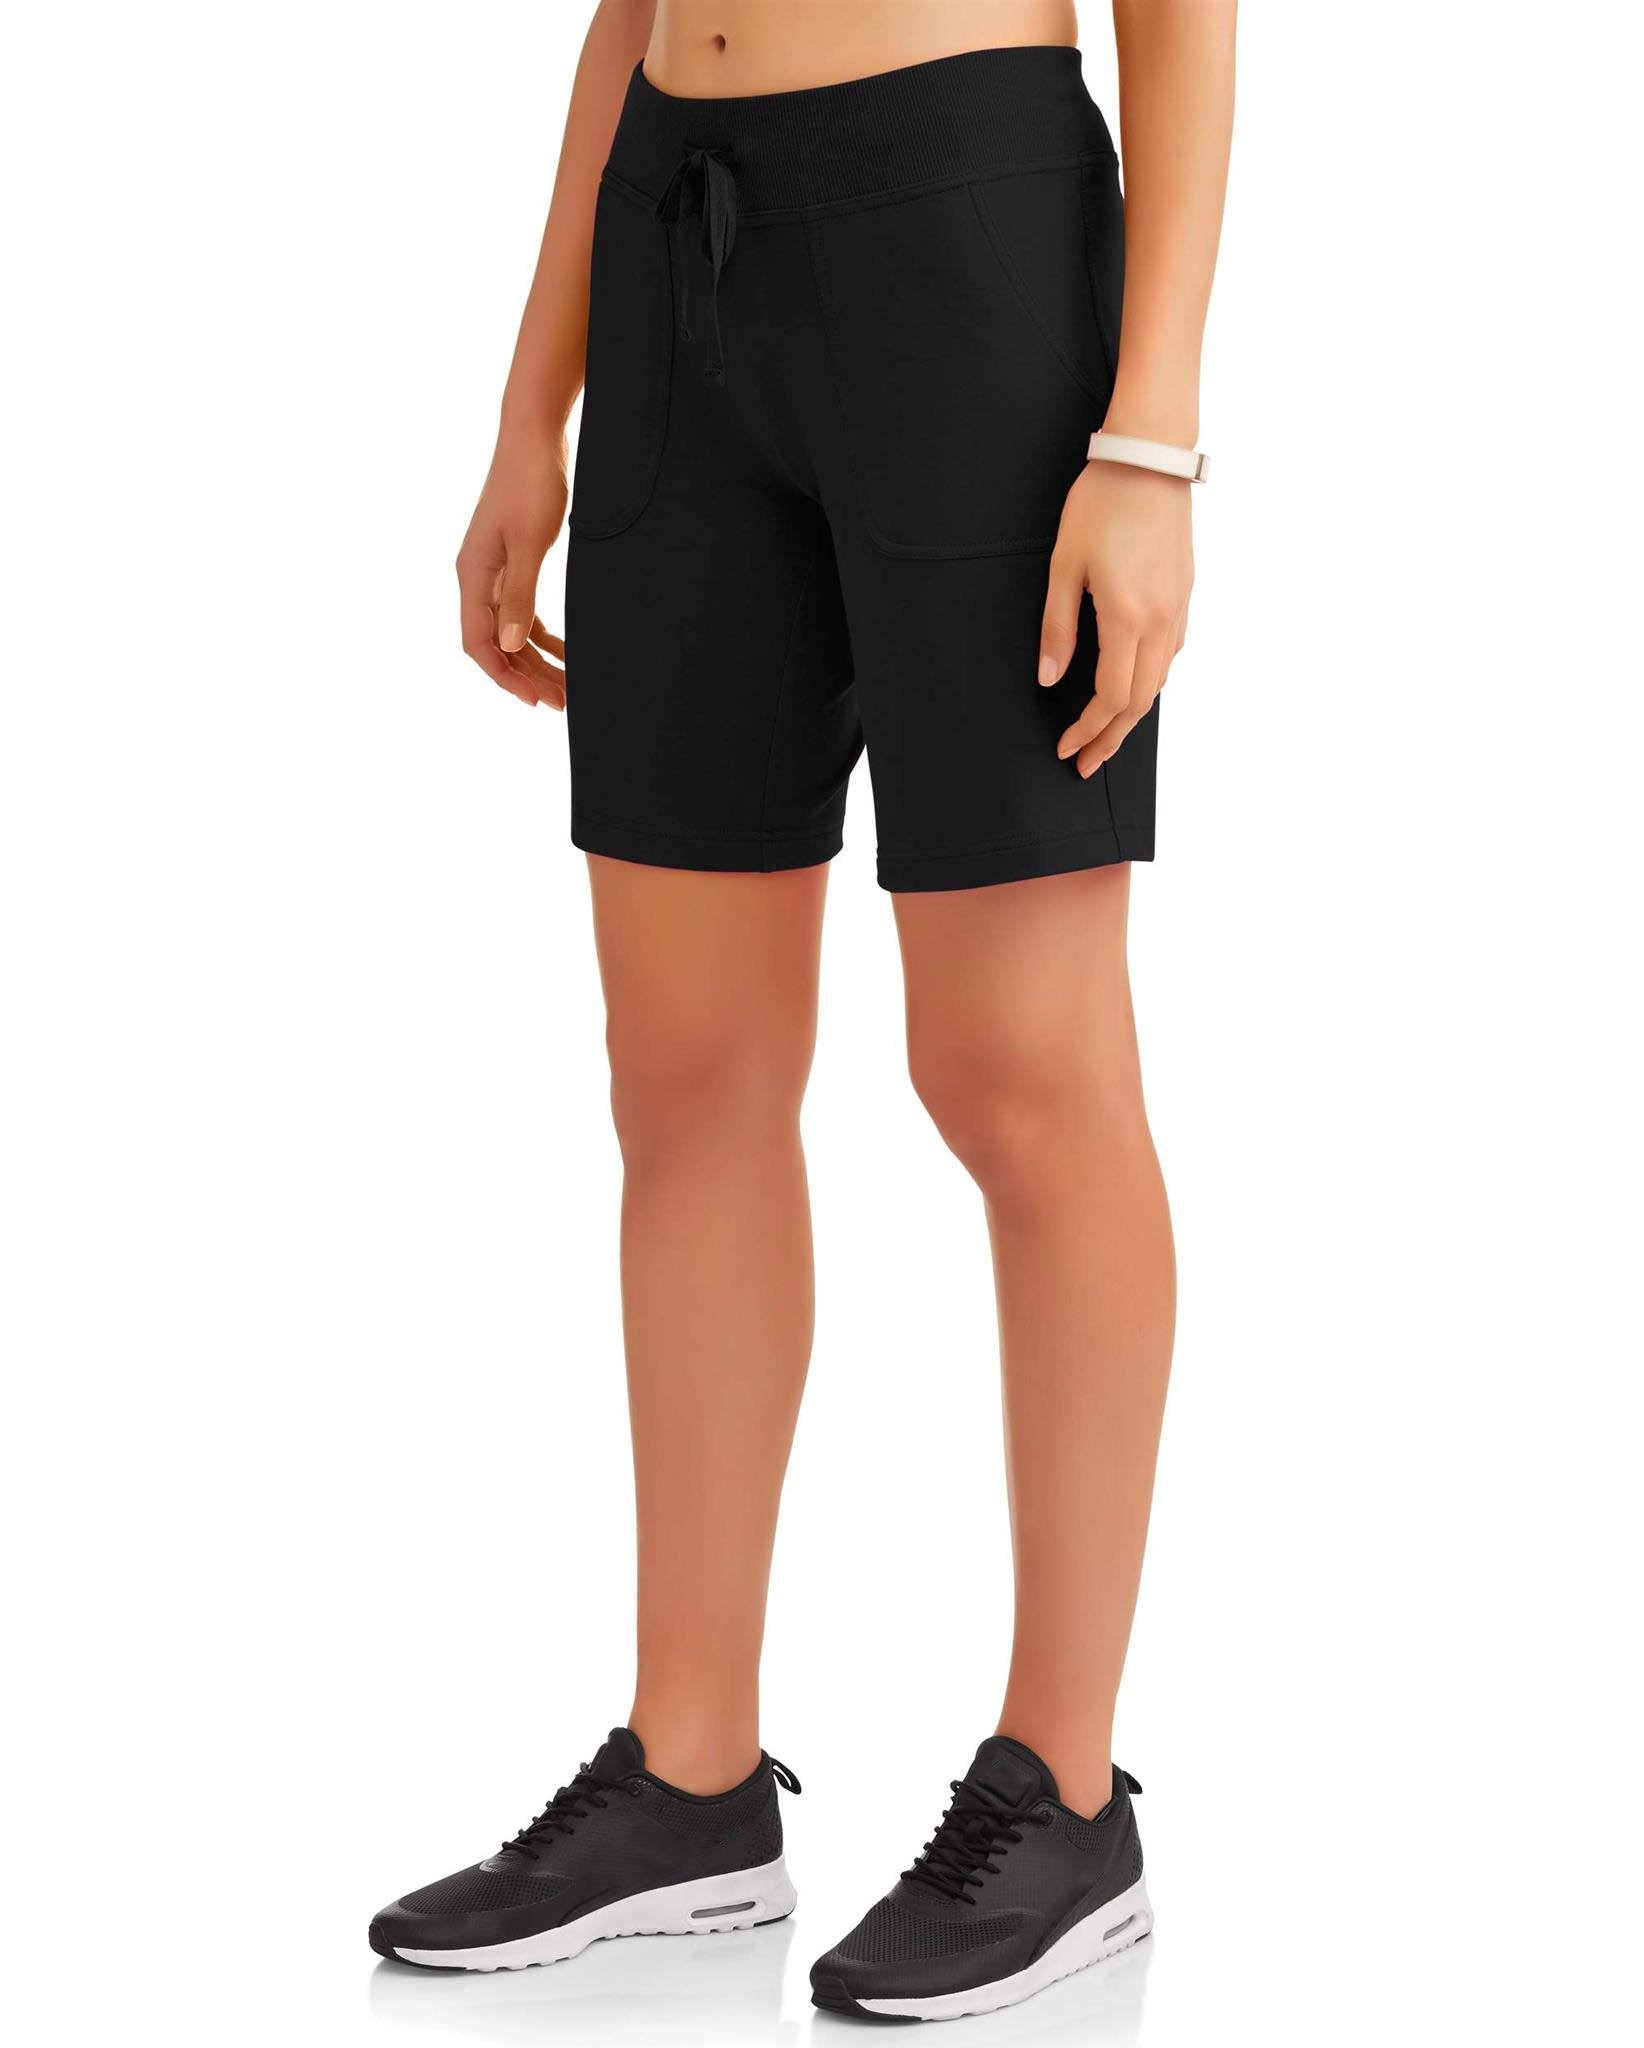 Athletic Works Women's Active Performance Soft French Terry Drawstring Shorts 2 Pockets - Black L